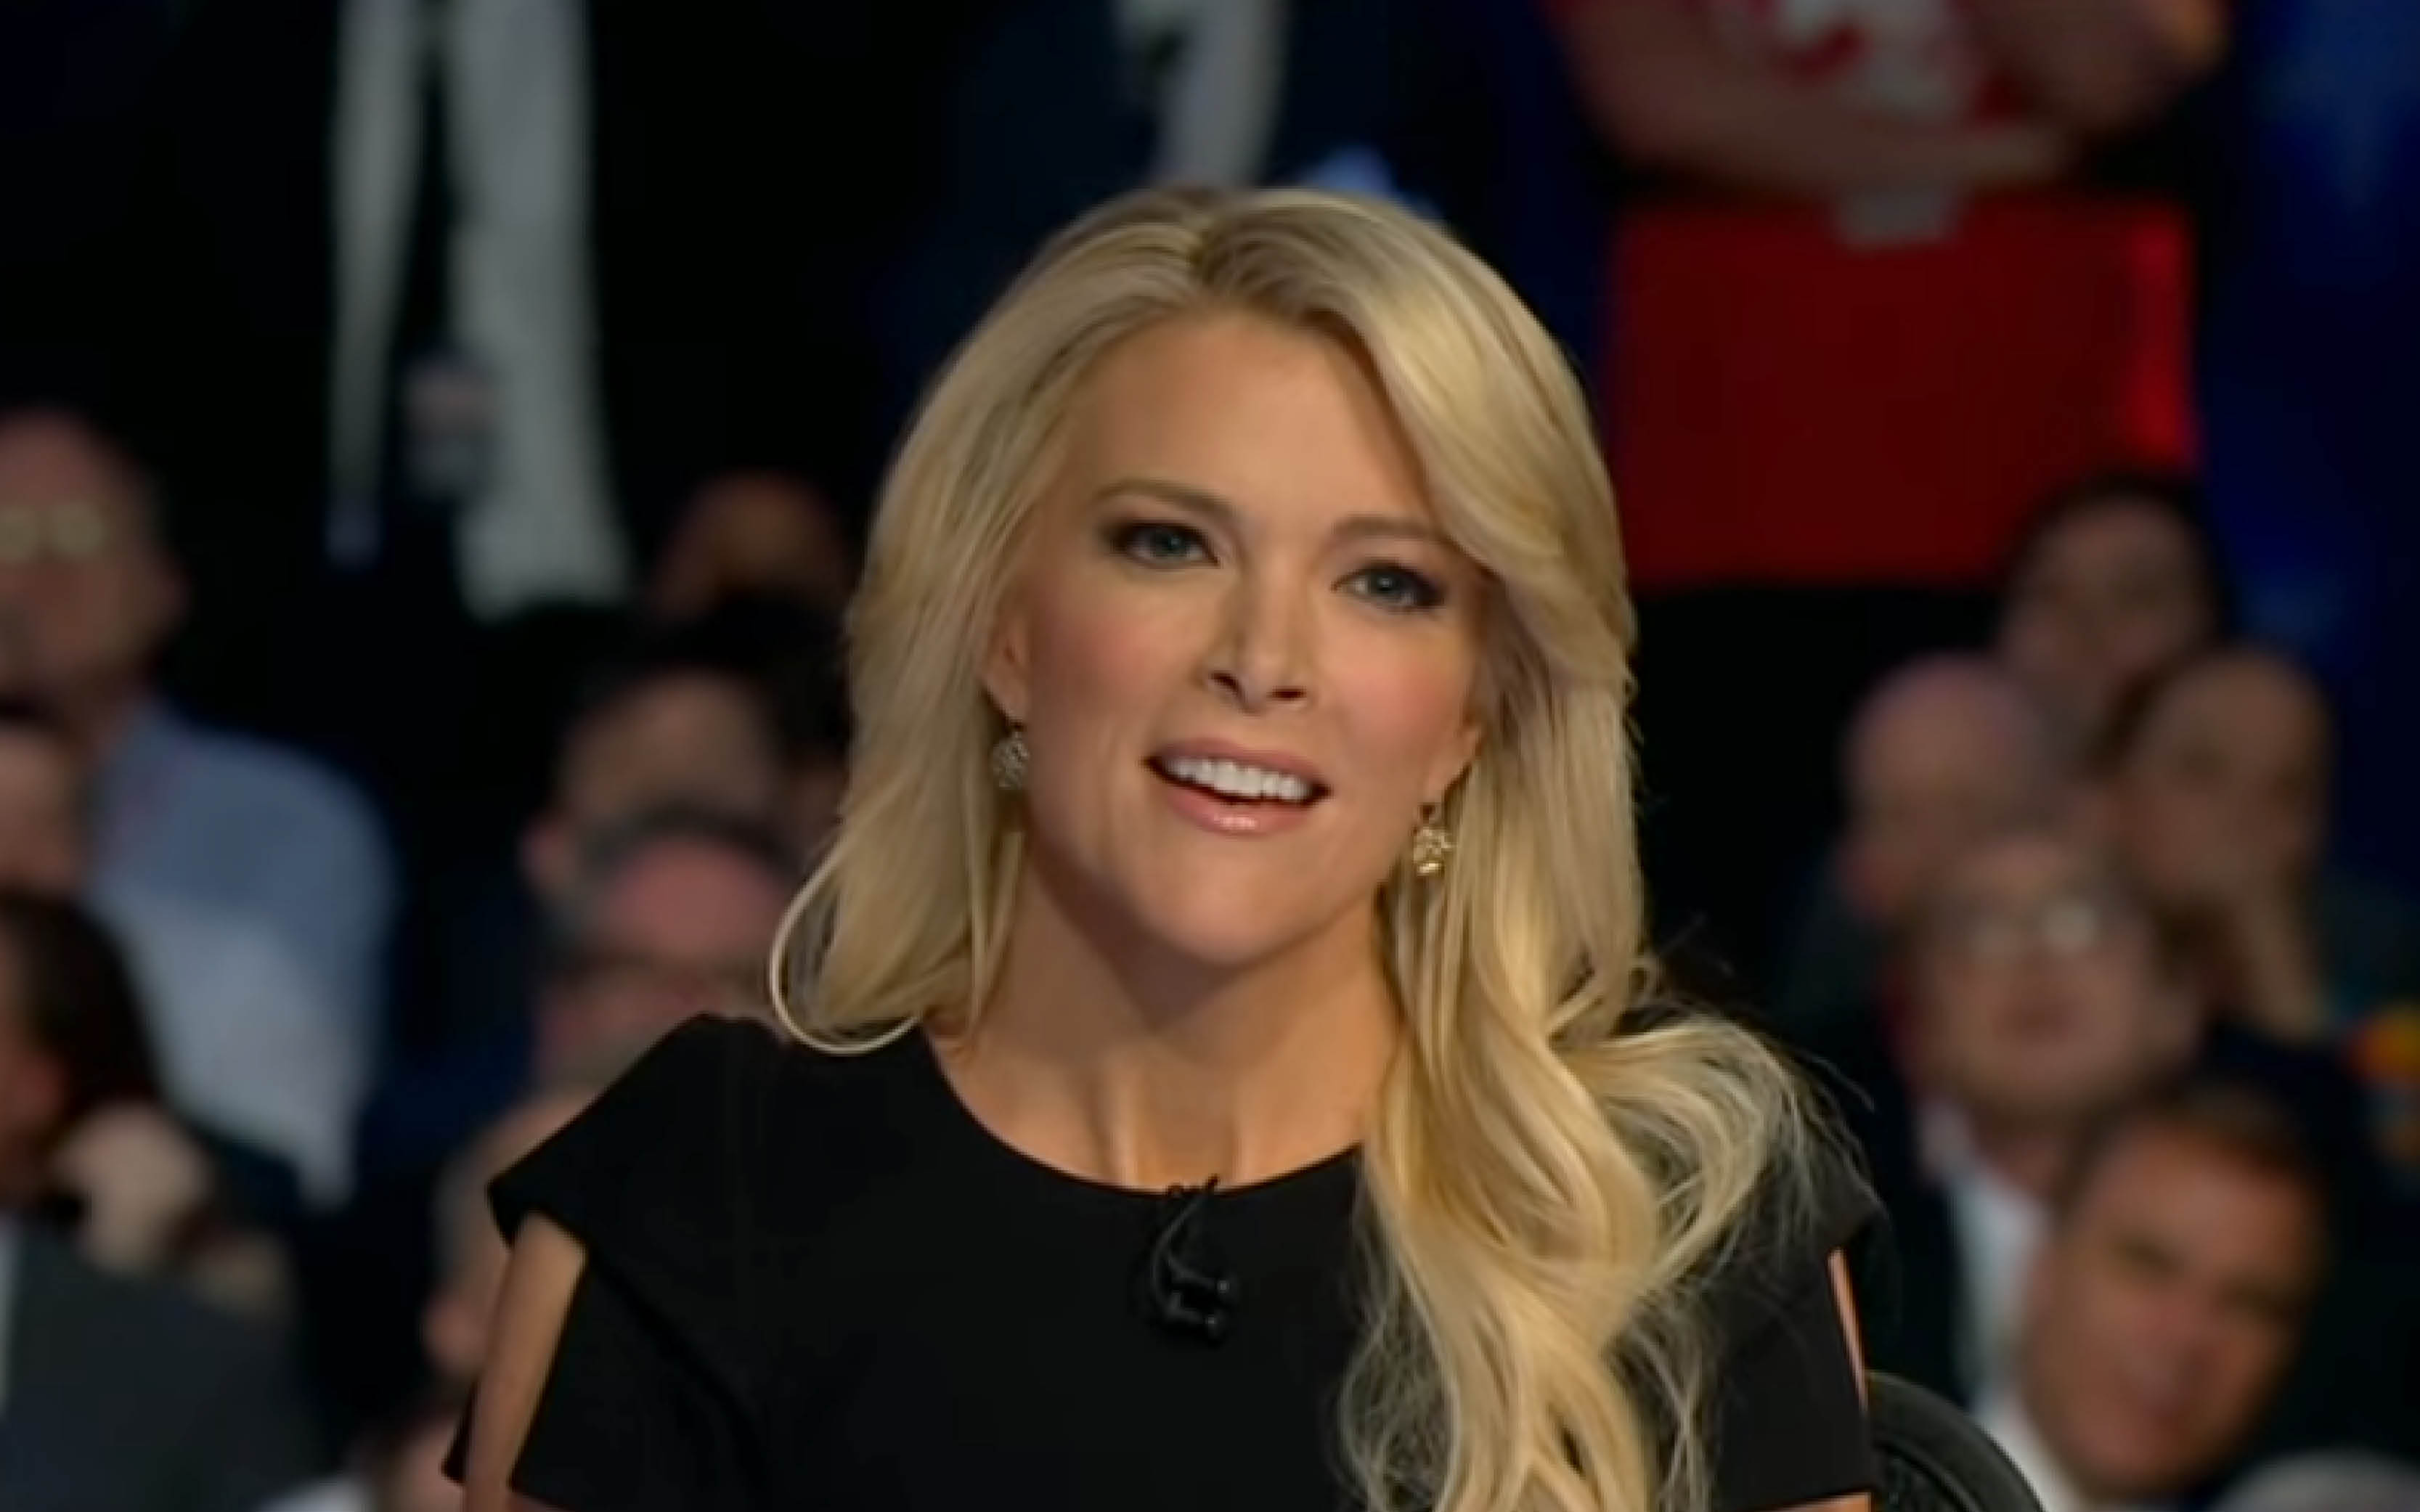 Megyn Kelly's Move To NBC Reveals Personal Value